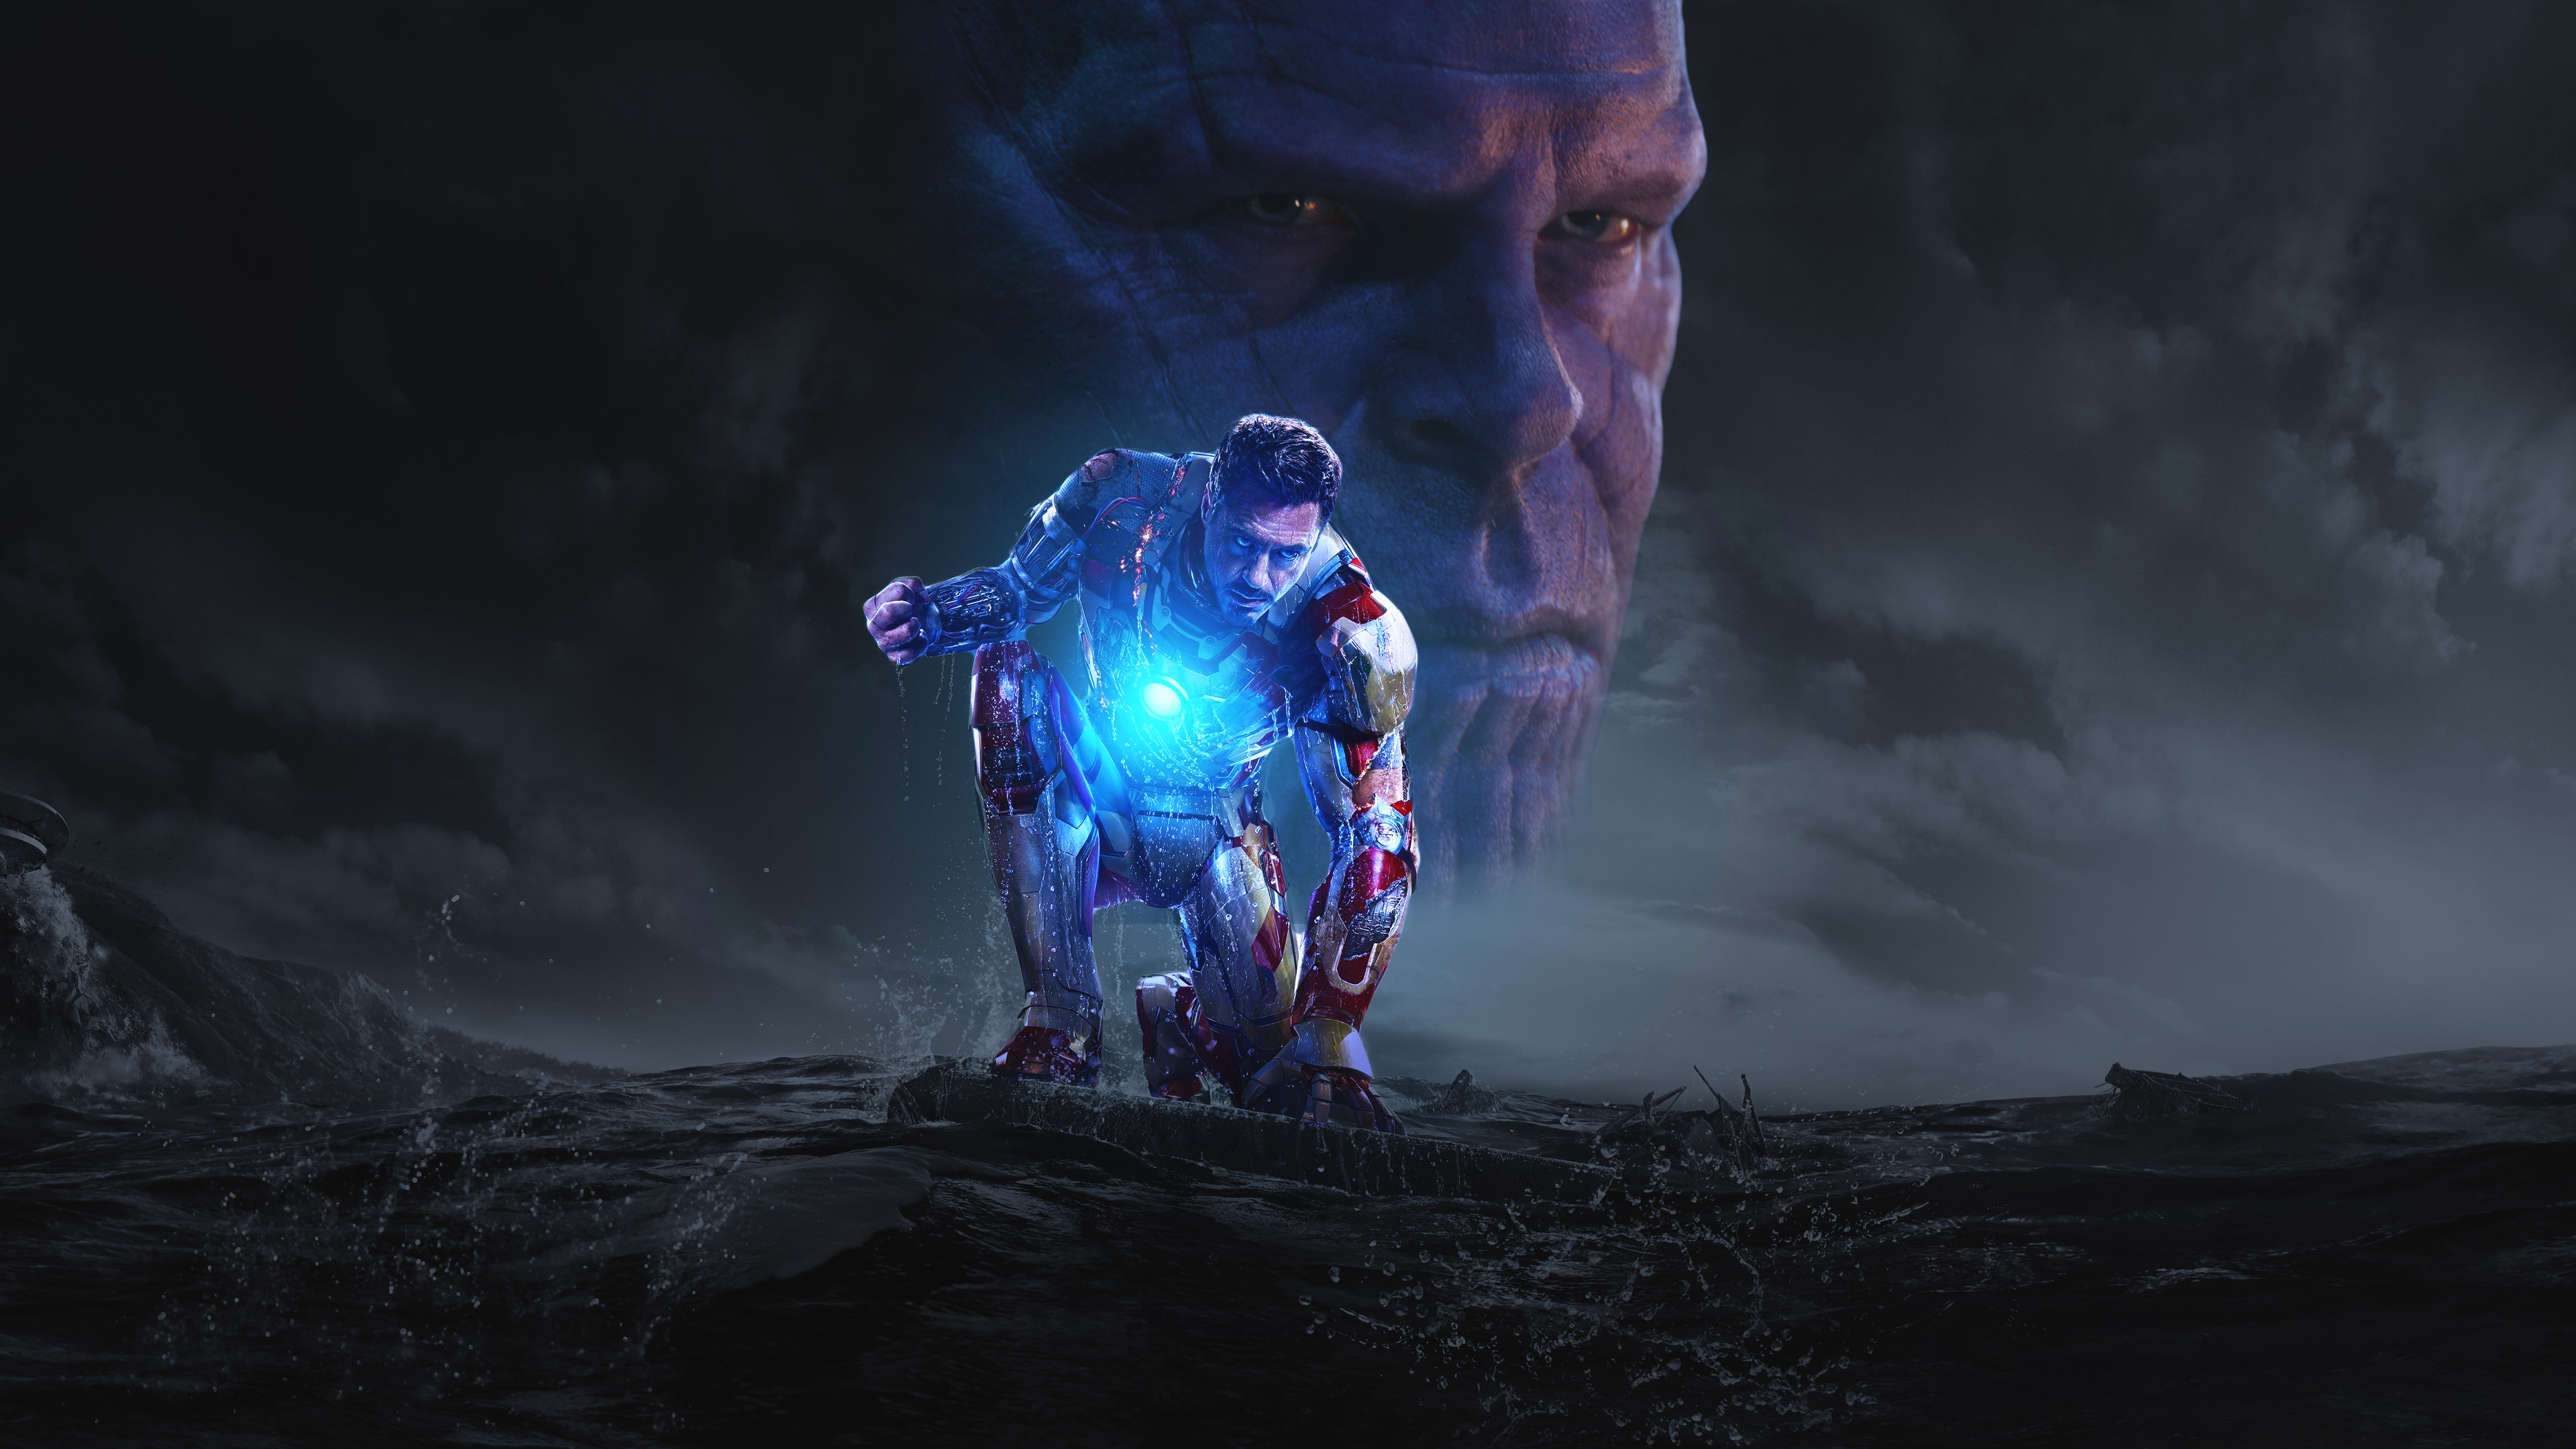 Iron man and thanos in avengers infinity war hd - Avengers amoled wallpaper ...